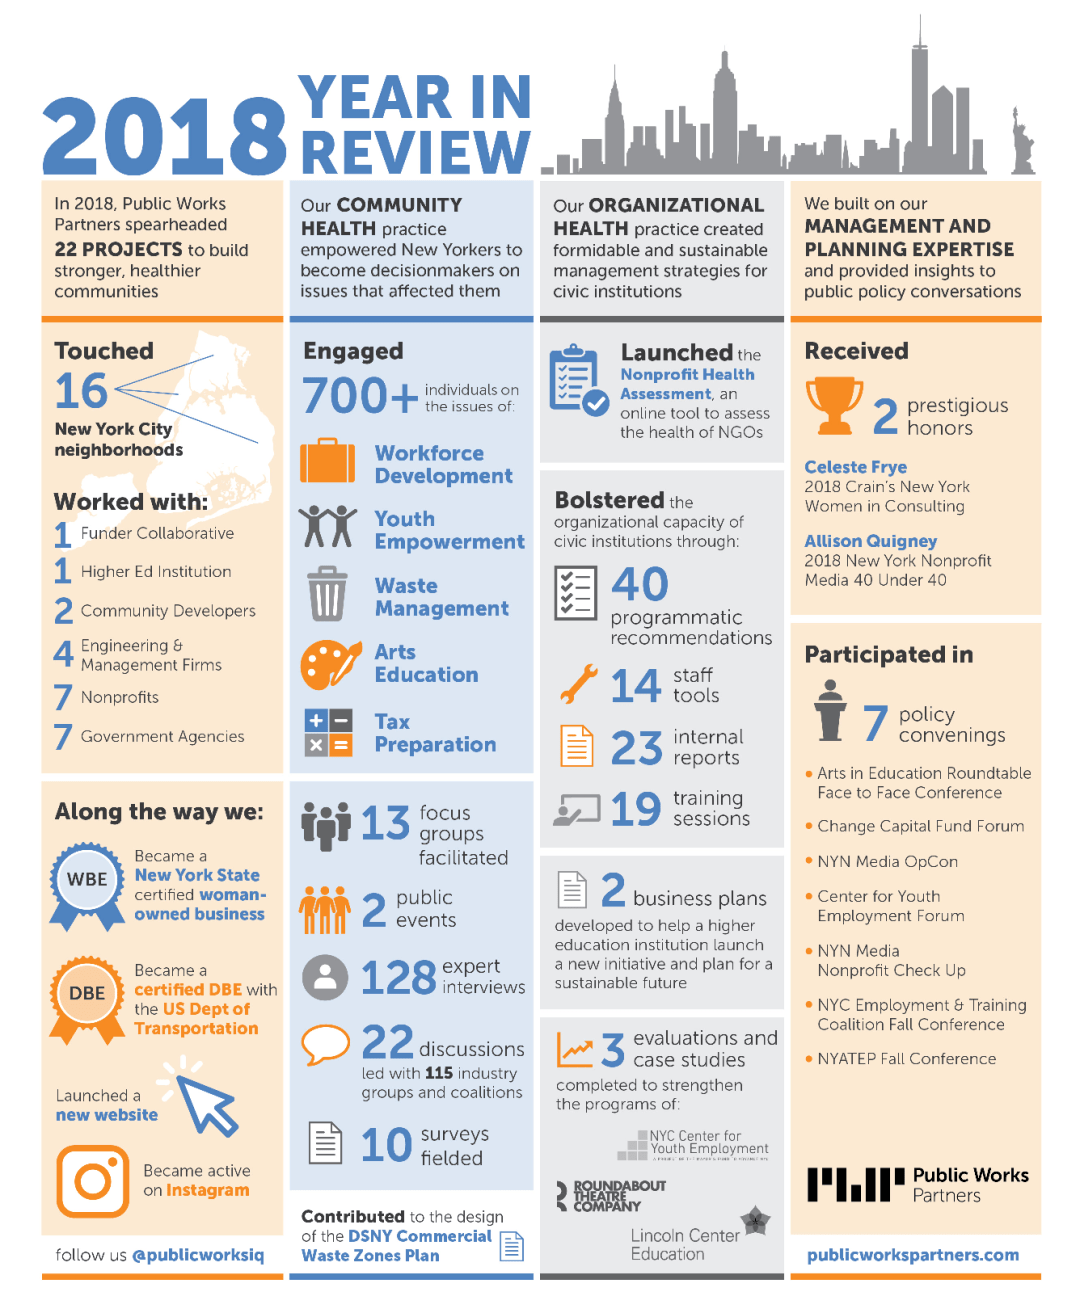 Public Works Partners - 2018 Year In Review